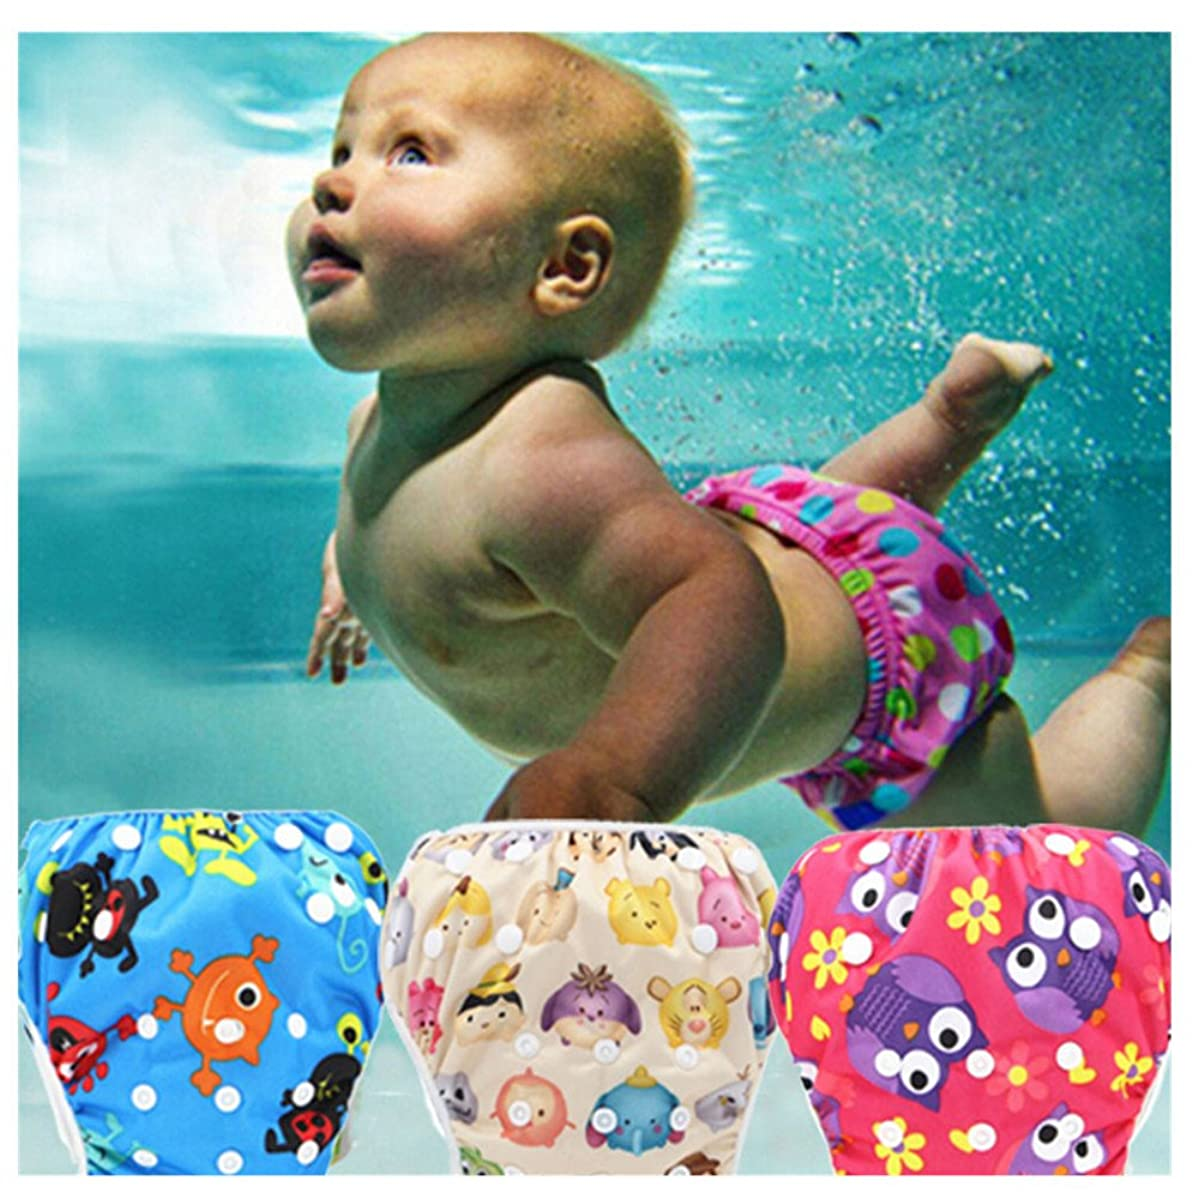 Makaor Baby Swim Diaper Reusable Leakproof Elastic Infant Pool Pant Toddler Boys Girls Adjustable Swimwear Swimming Trunks Shorts for 0-3 Years Baby (R07, Elastic Button Adjustable)